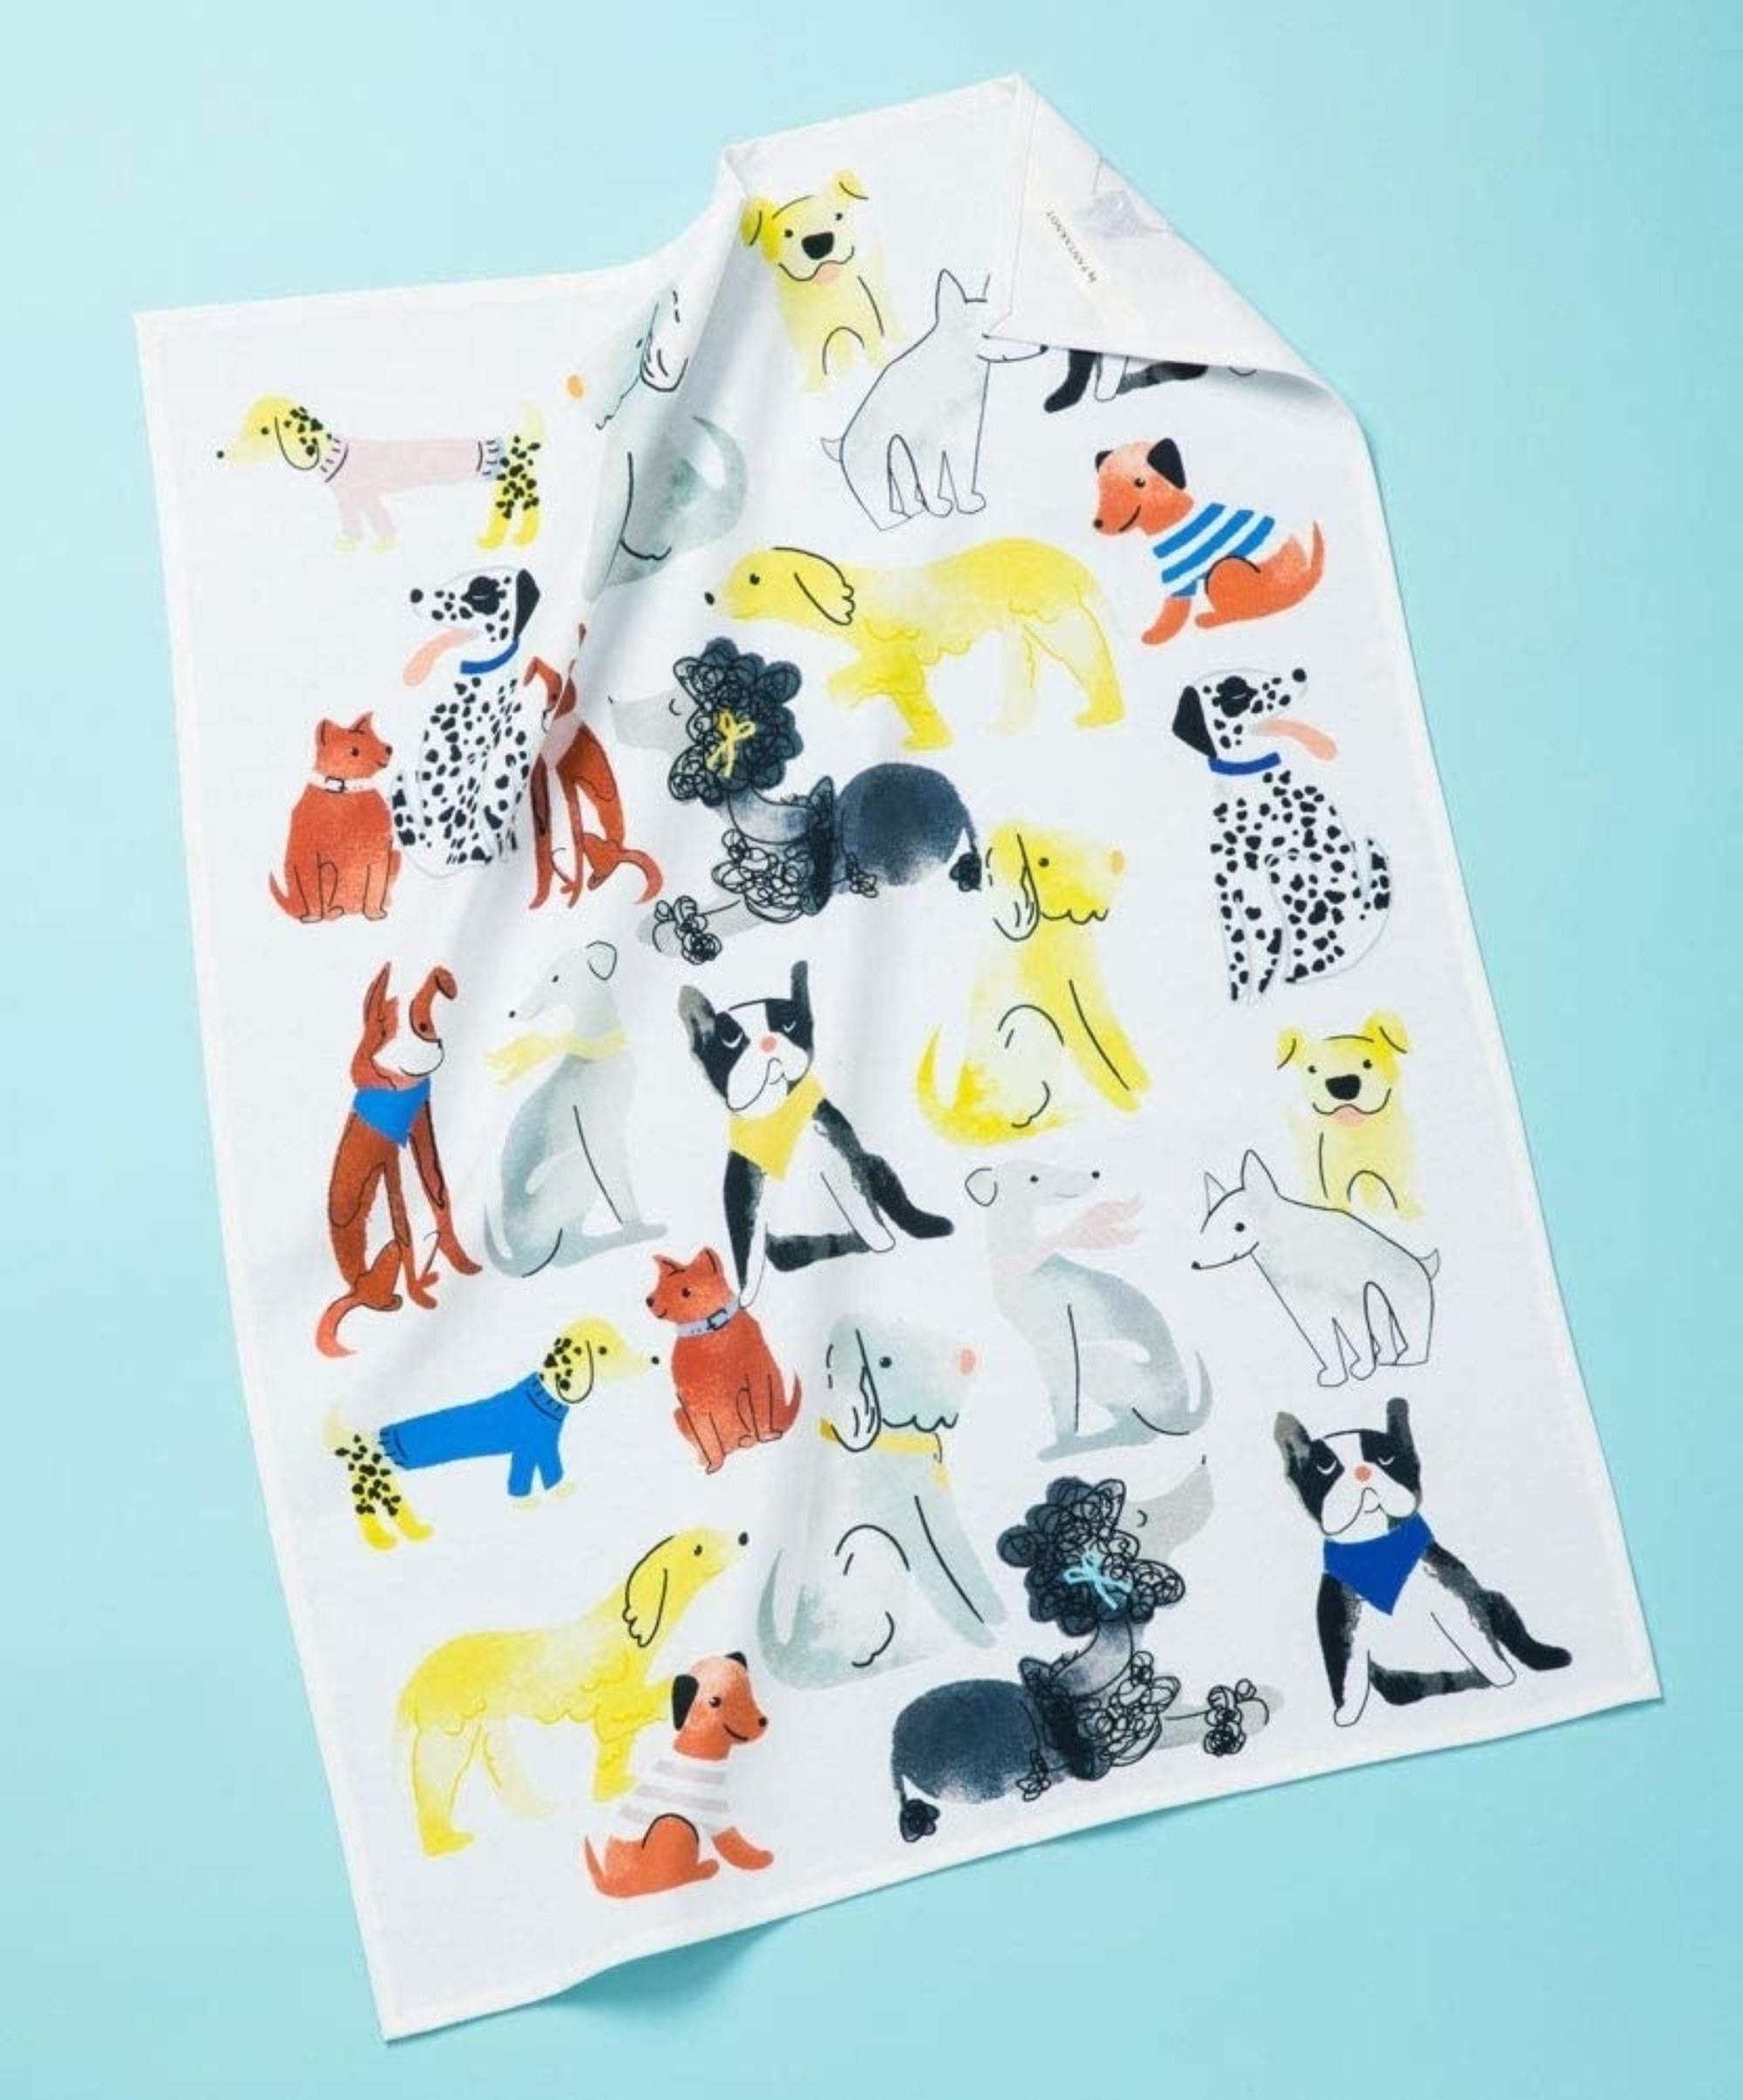 White cotton towel with illustrations of different kinds of dogs all over it